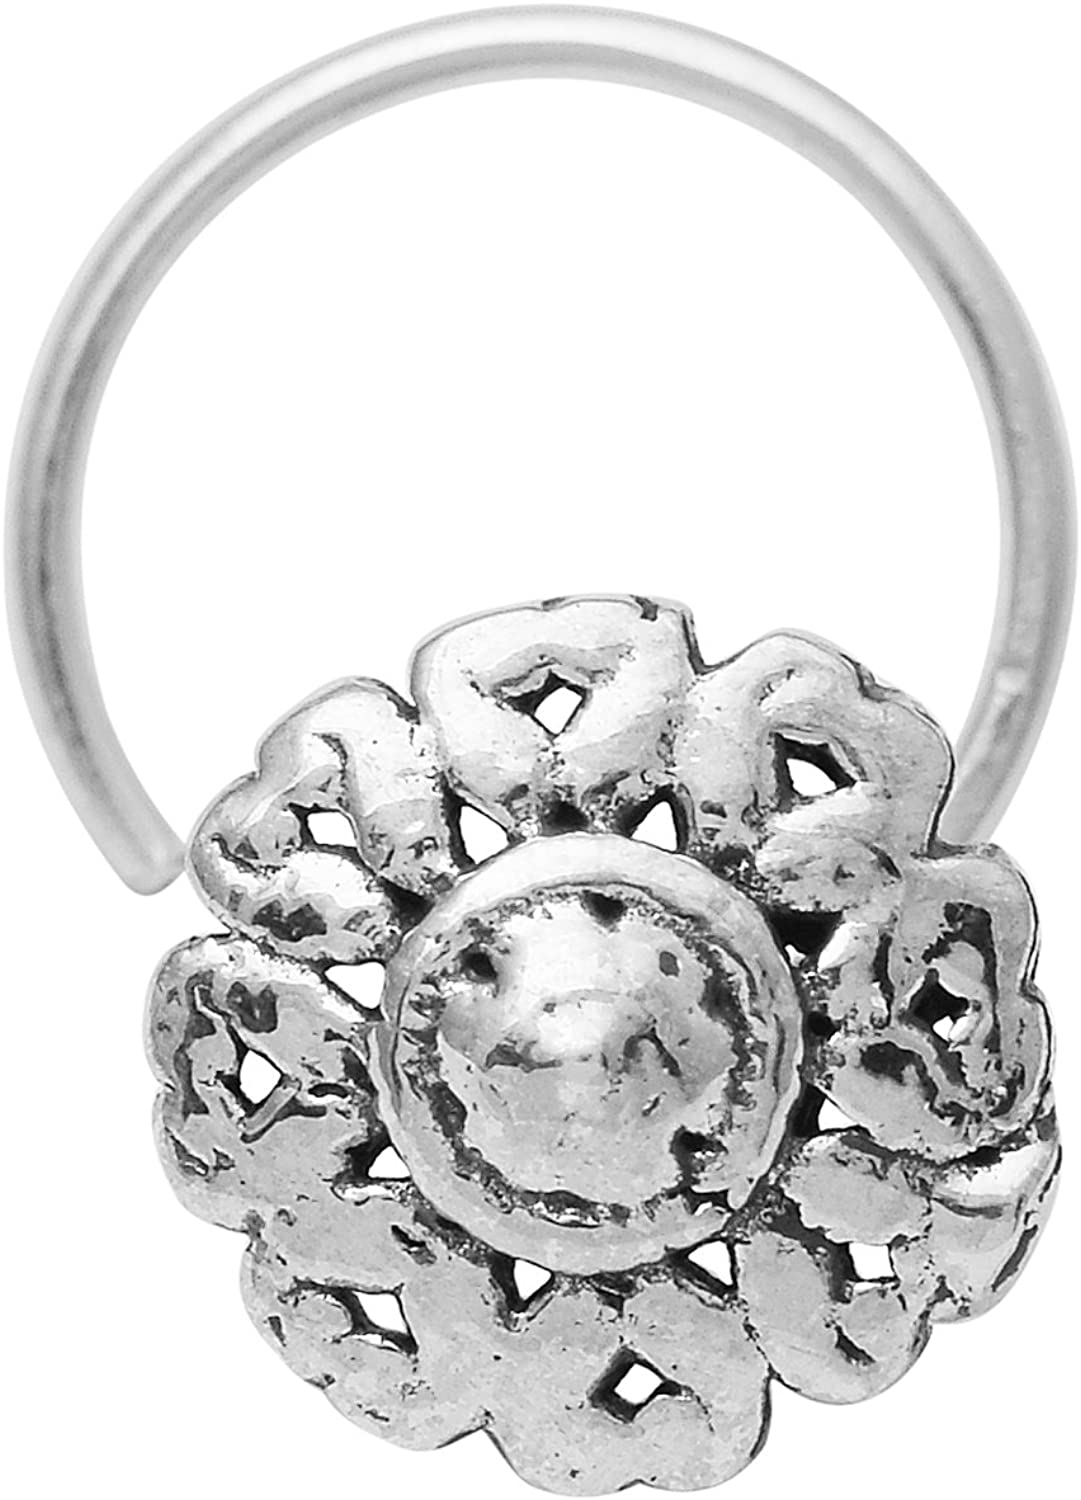 Shine Jewel Solid 925 Sterling Silver Oxidized Nose Pin For Women Flower Design